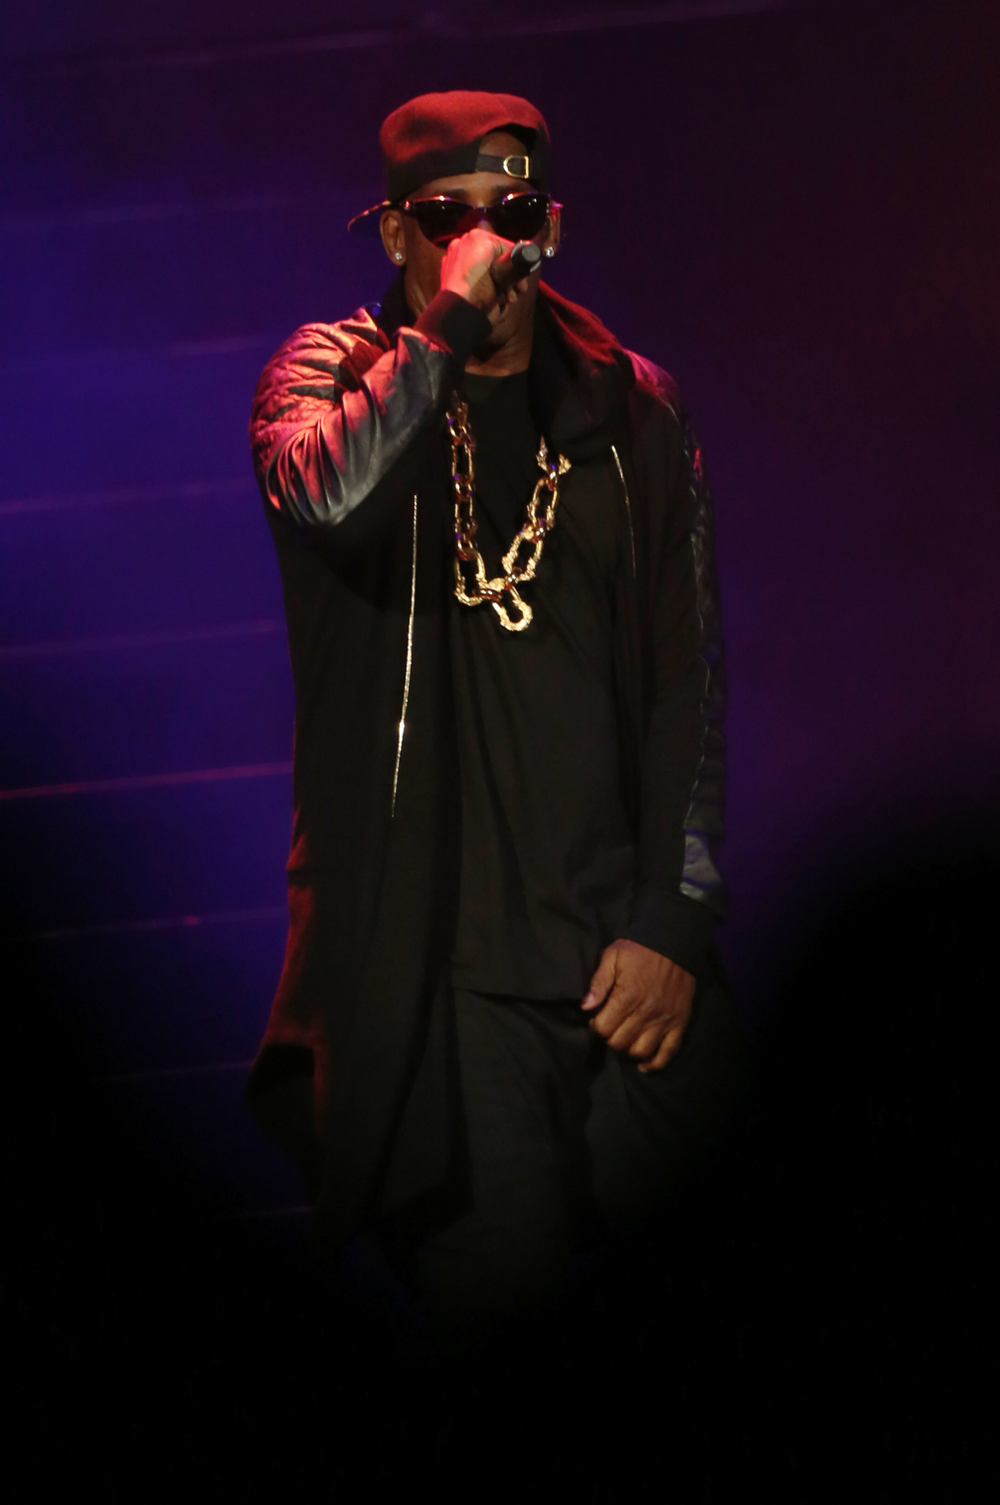 R Kelly Photographed In Concert By Alex Jackson